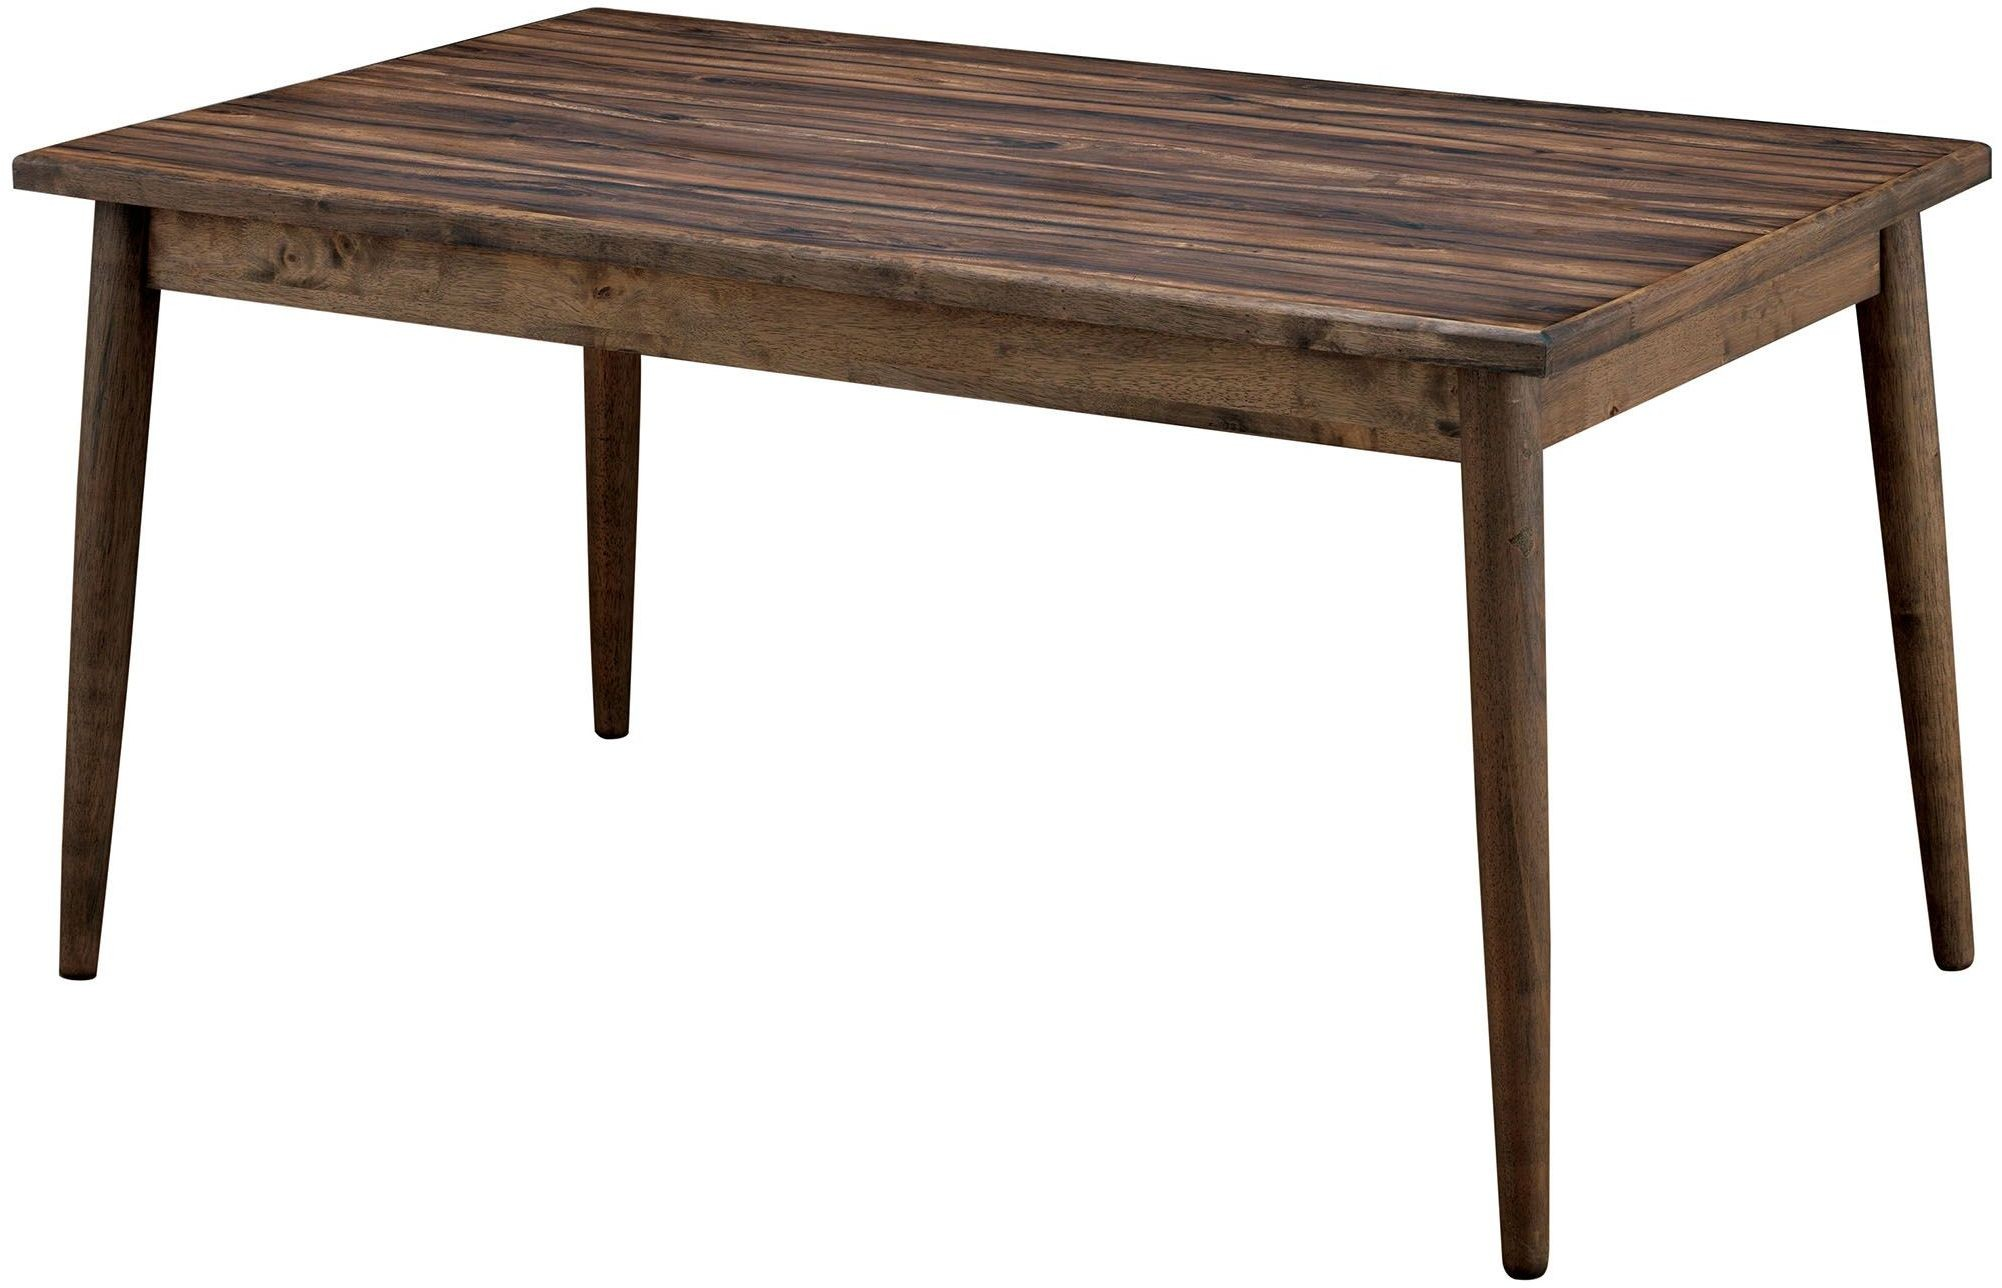 Eindride brown rectangular dining table from furniture of america coleman furniture - Rectangular dining table for 6 ...